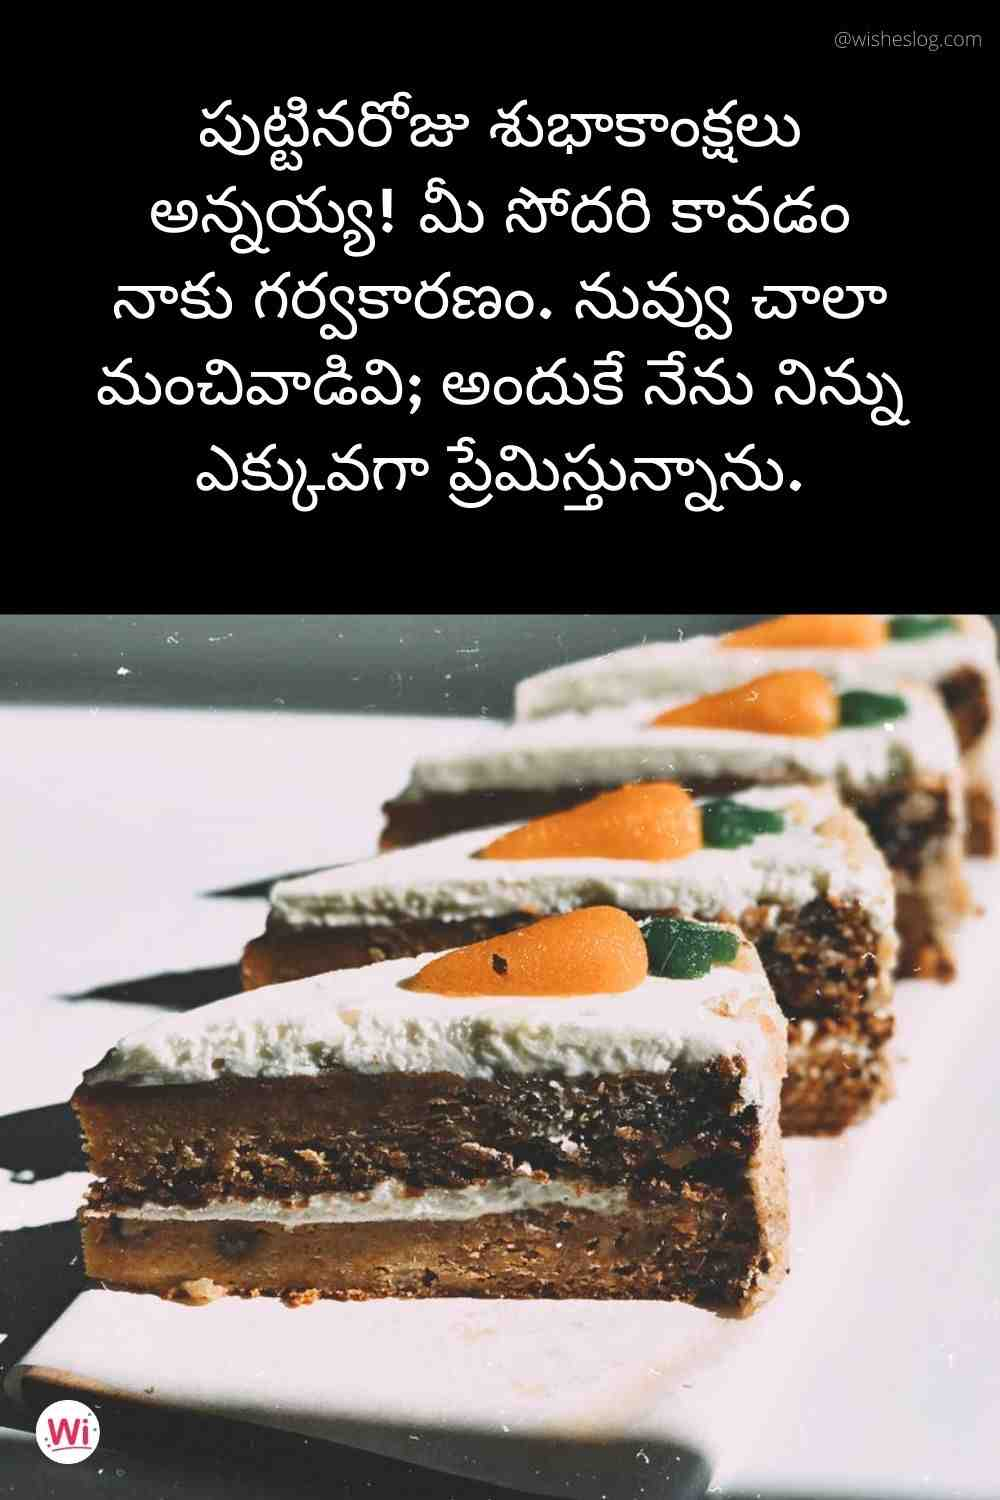 birthday greetings in telugu for brother